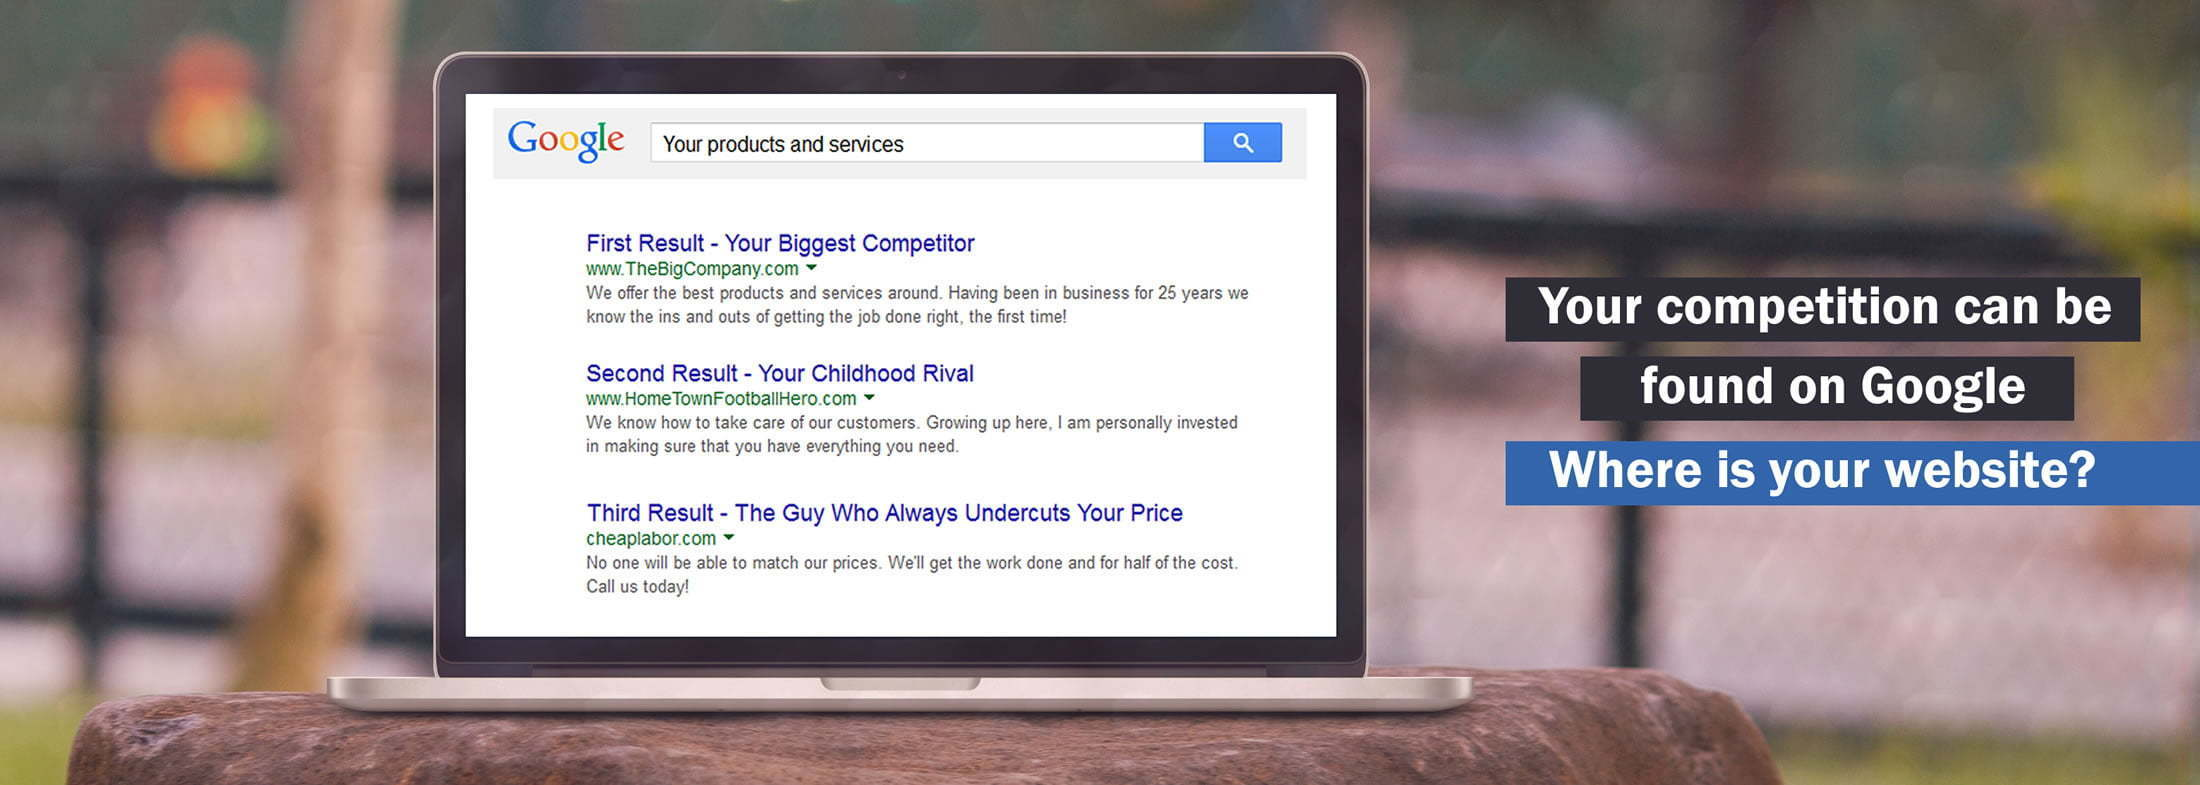 """Laptop displaying search results with the statement, """"Your competition can be found on Google. Where is your website?"""""""